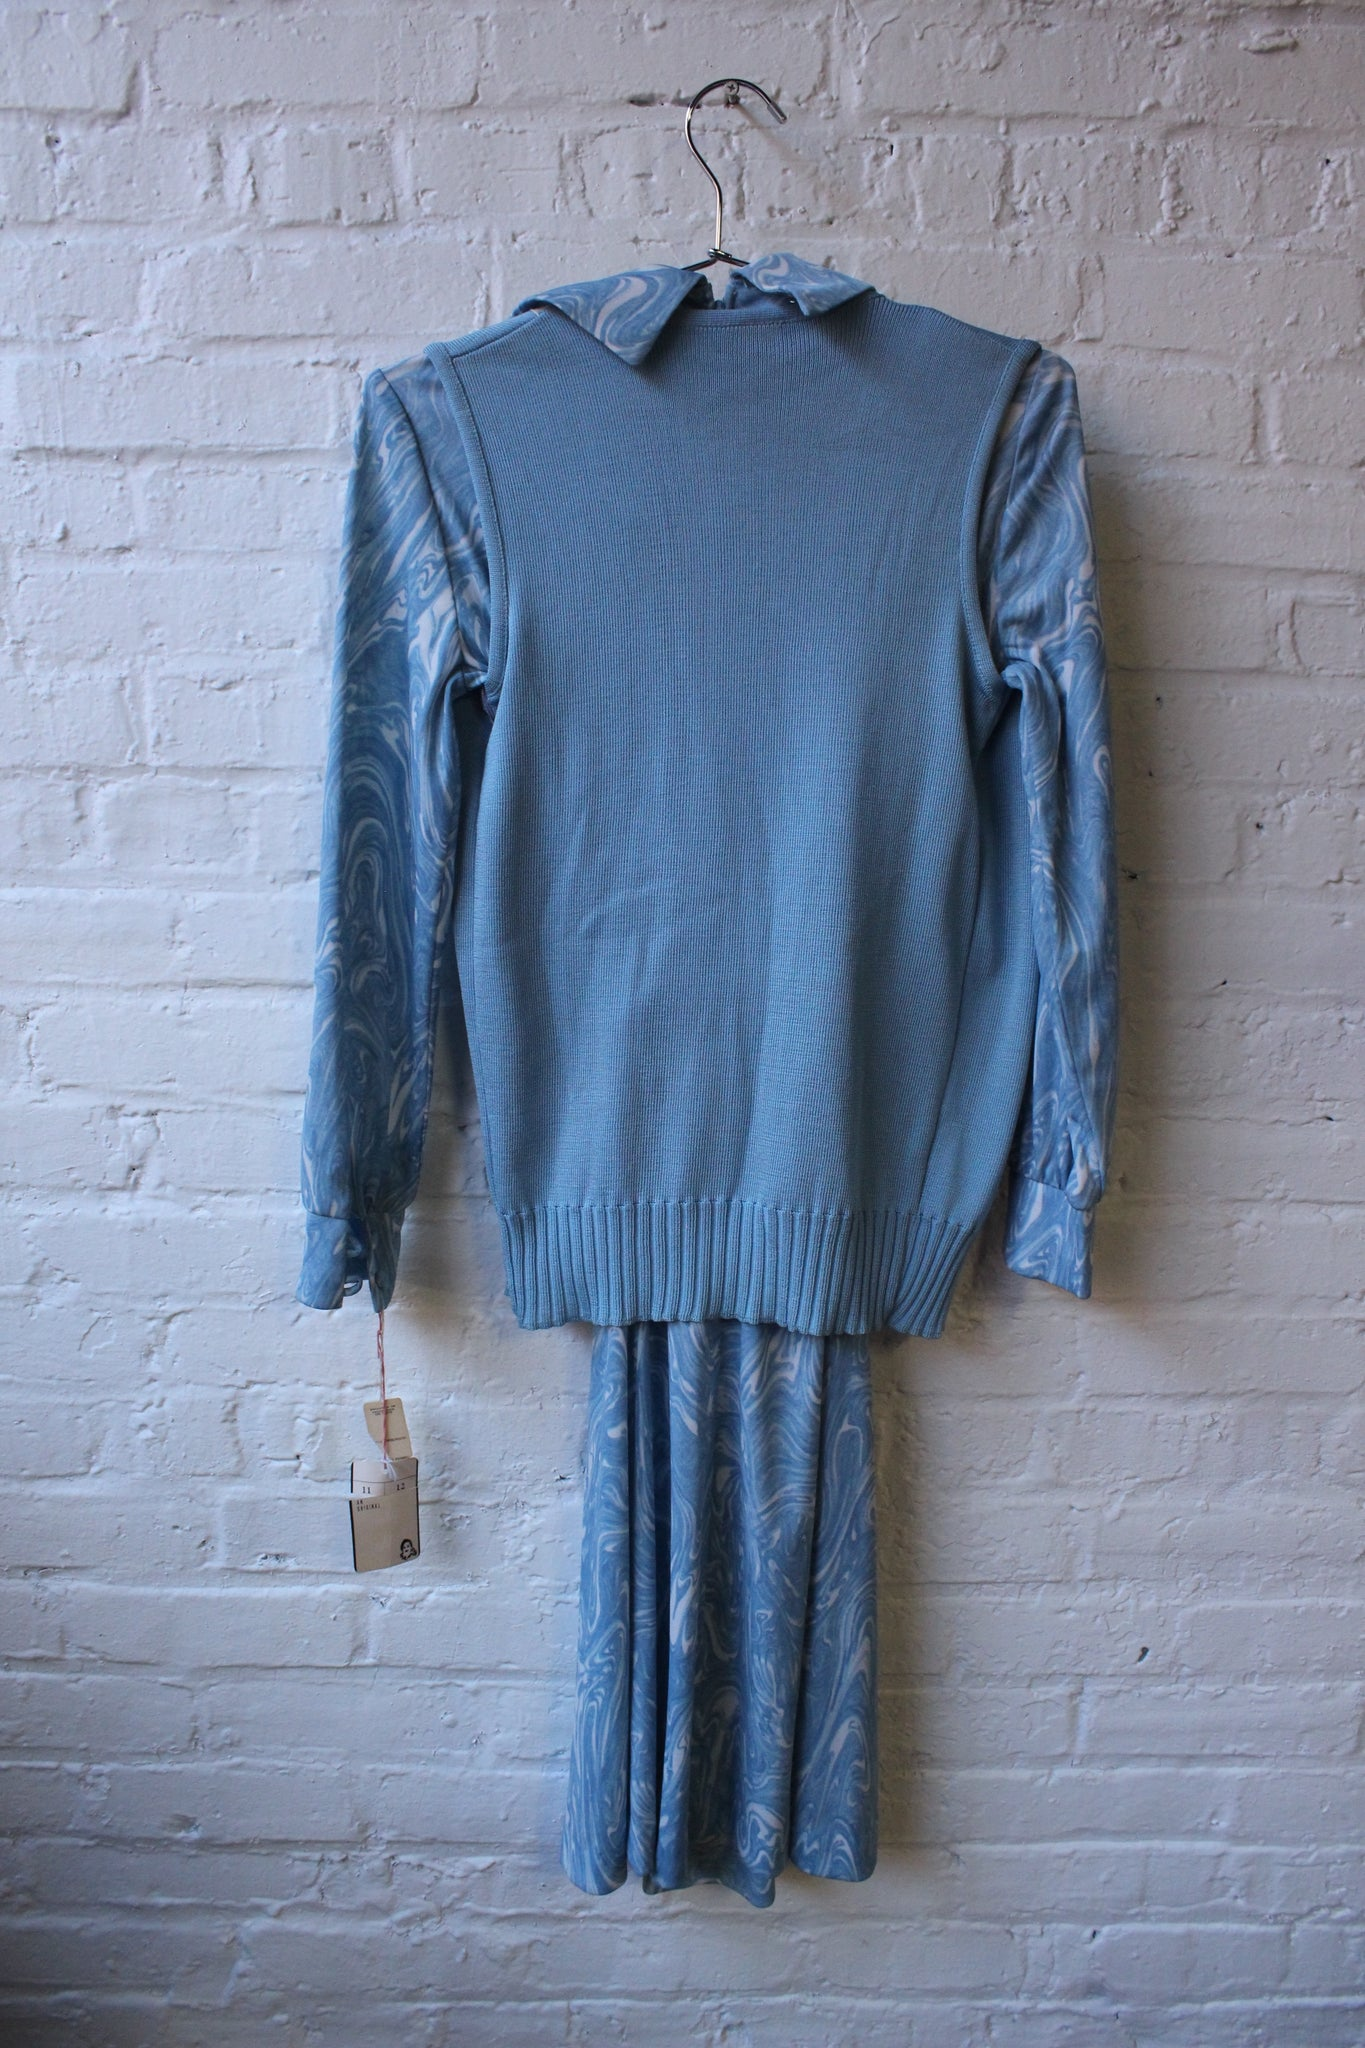 Deadstock Evan Original 70s Dress